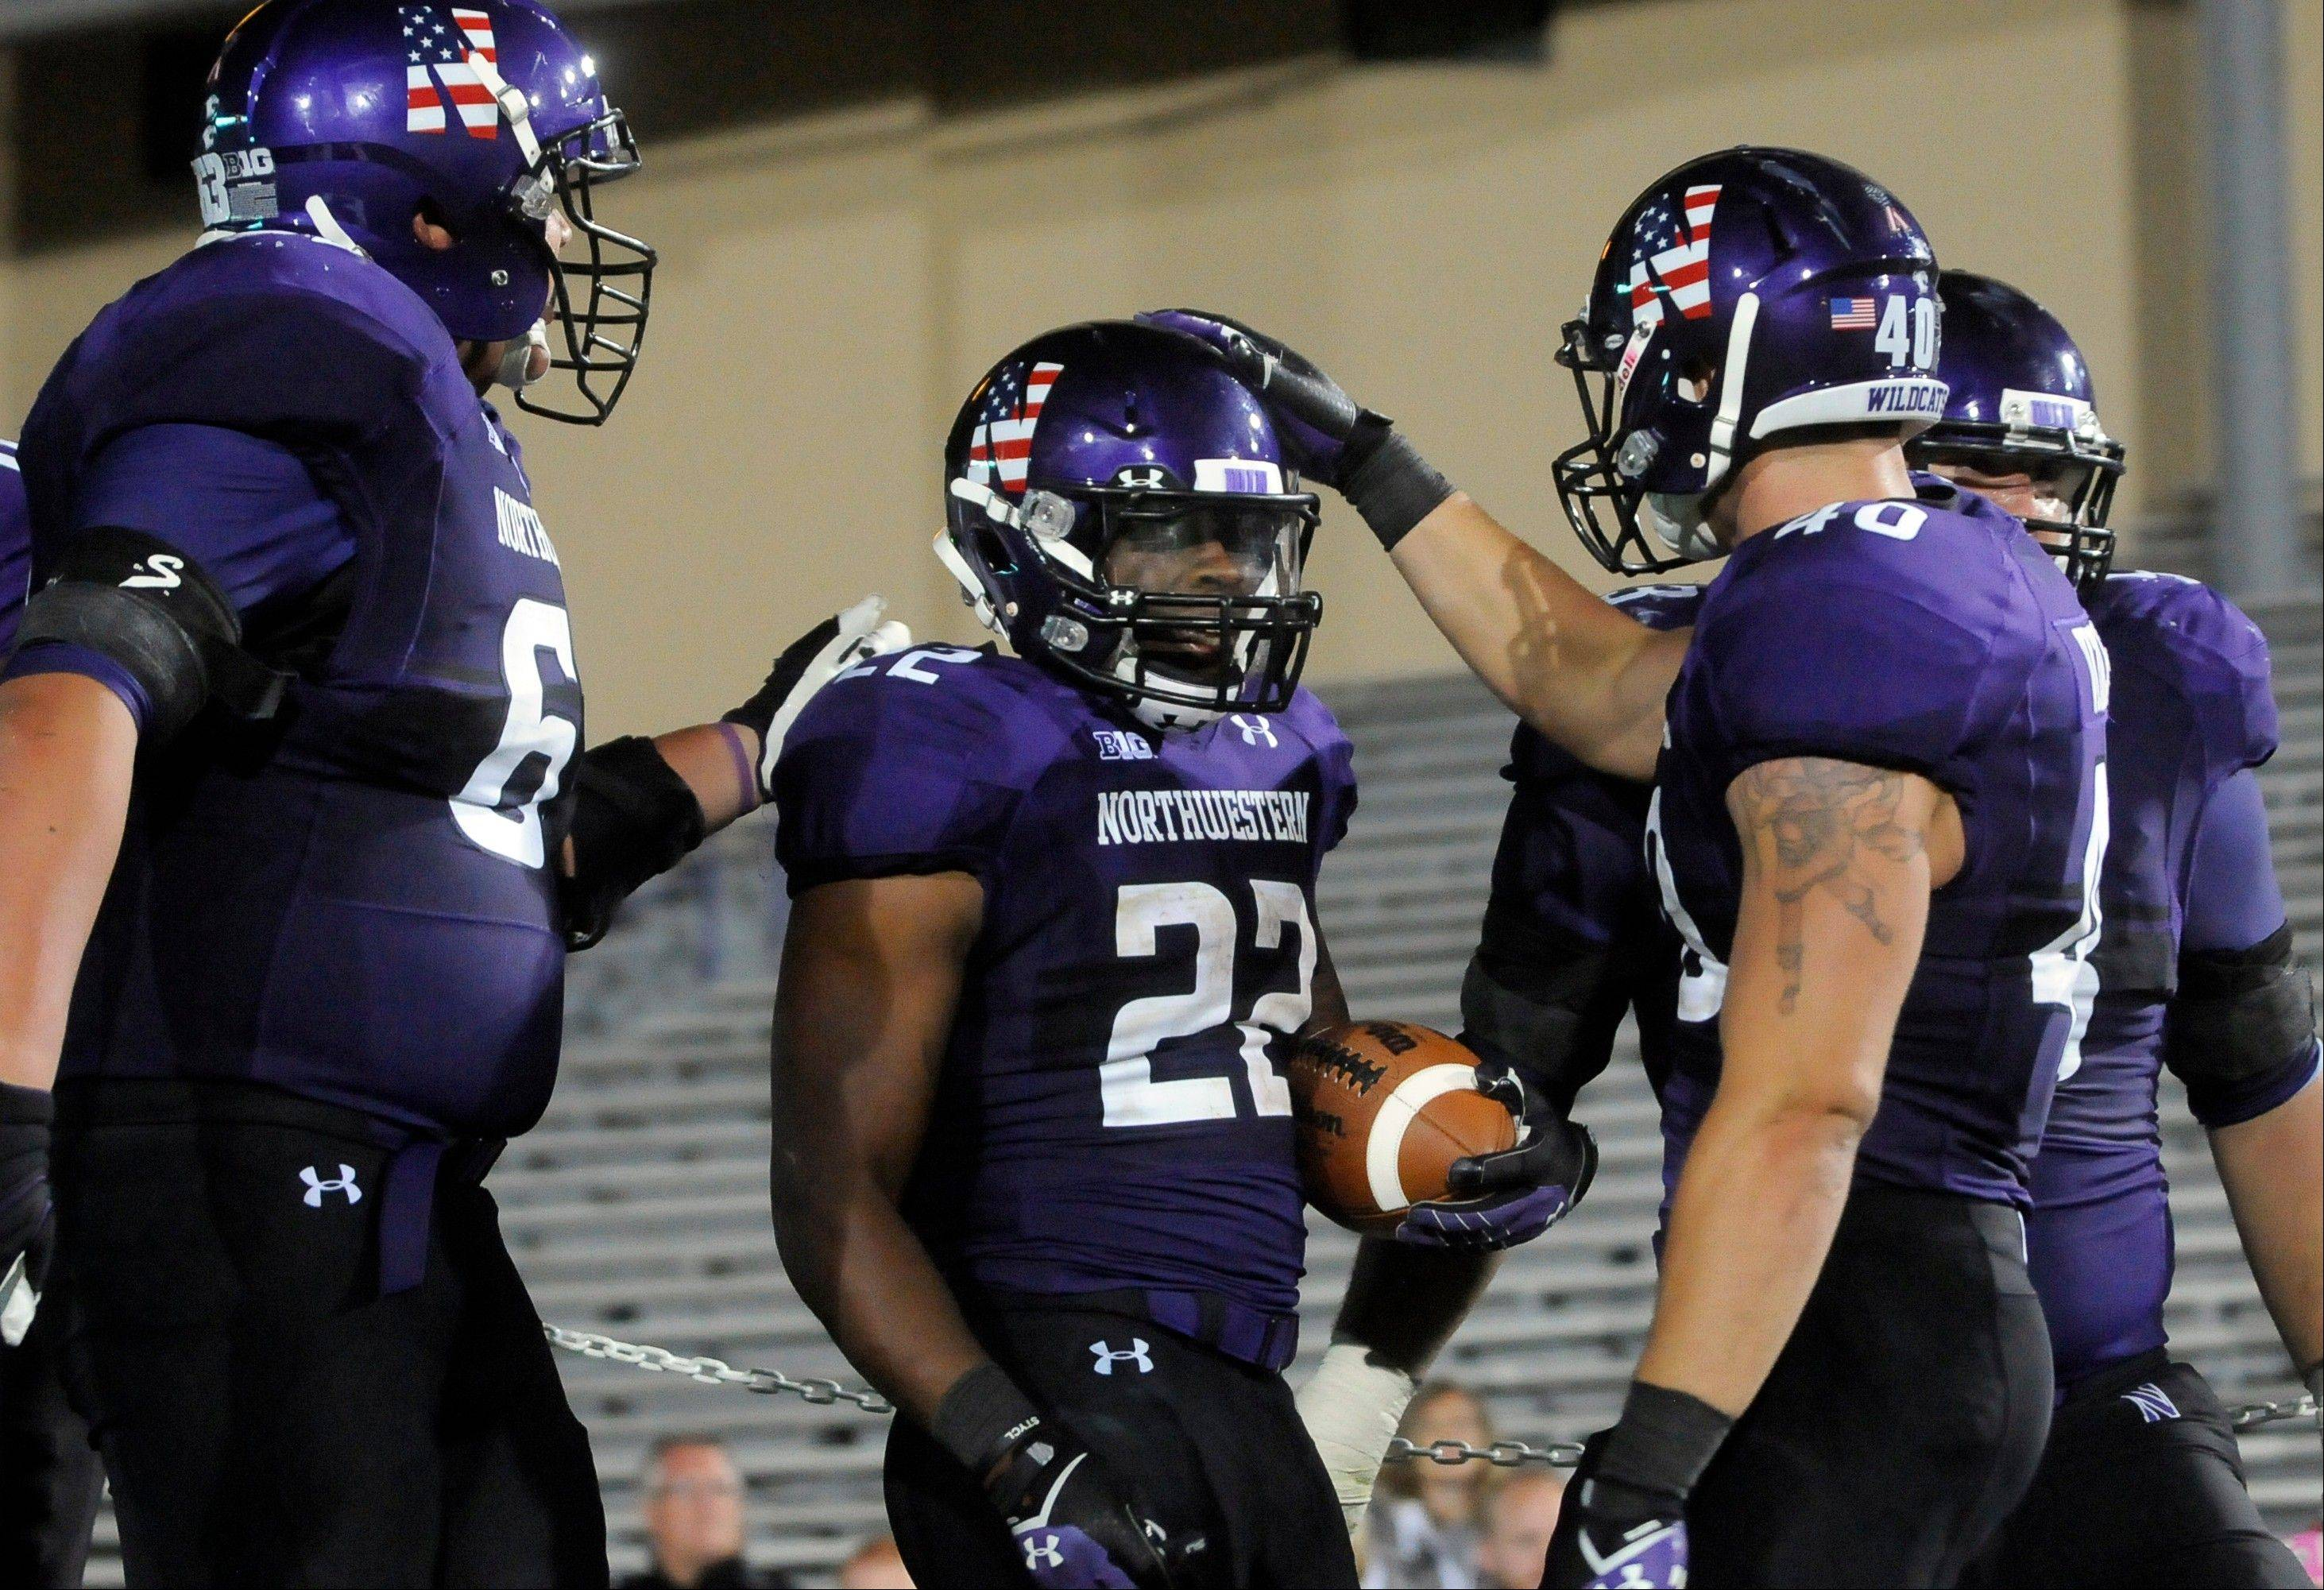 Northwestern's Treyvon Green (22) celebrates his touchdown against Western Michigan with teammates Ian Park (63) Dan Vitale (40) and Geoff Mogus (53)during the fourth quarter of an NCAA college football game in Evanston, Ill., Saturday, Sept. 14, 2013.